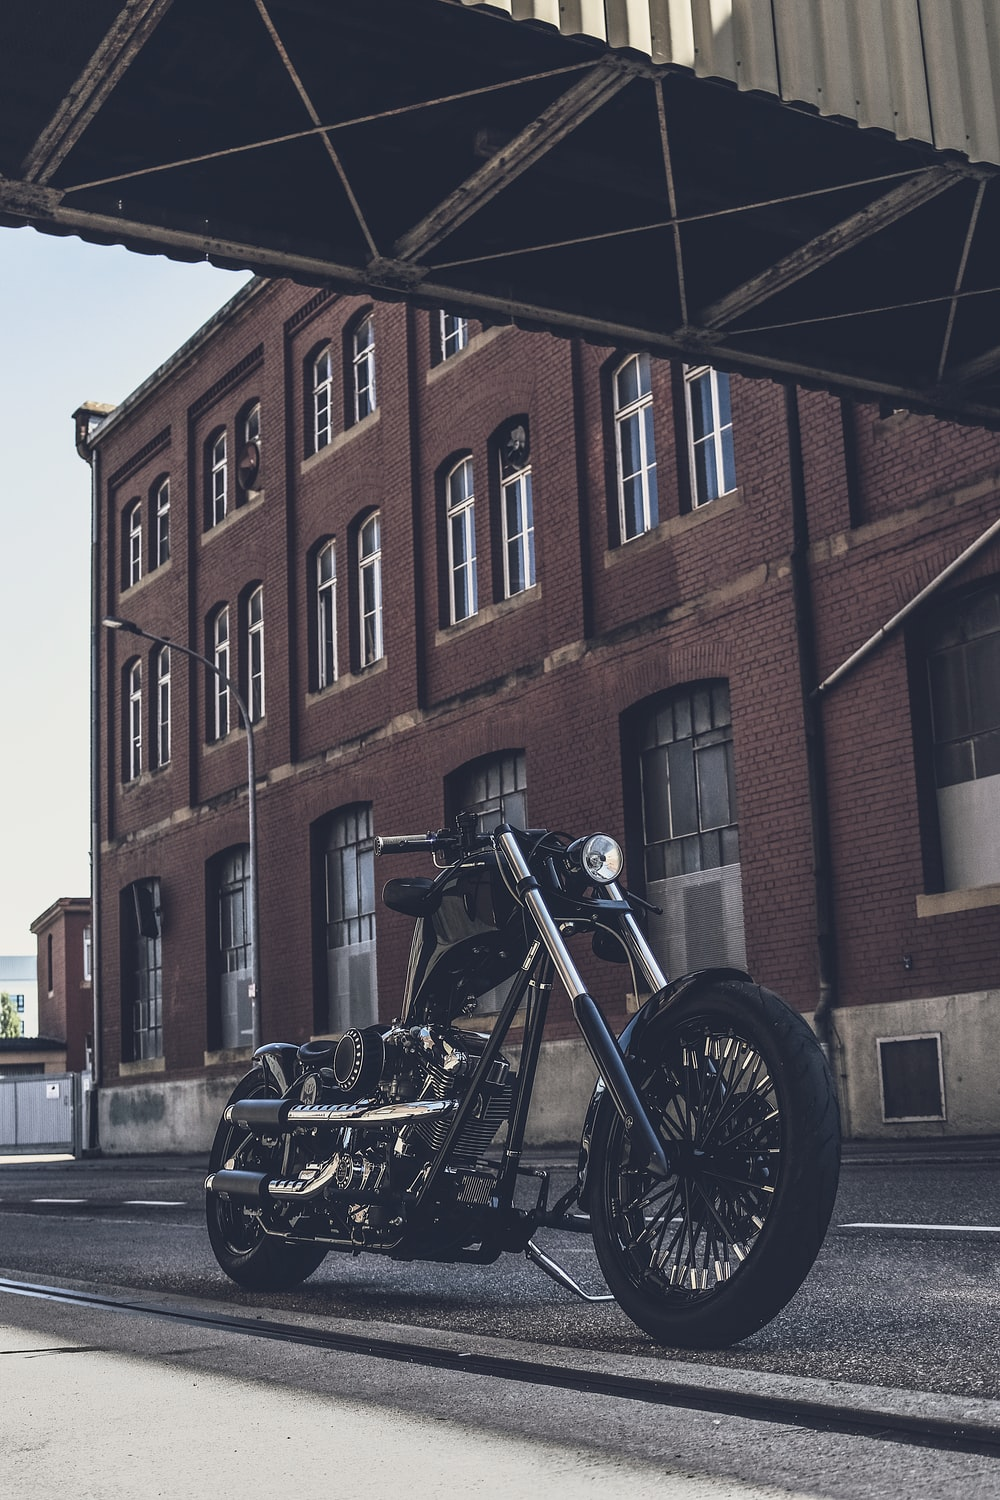 black motorcycle parked beside brown concrete building during daytime